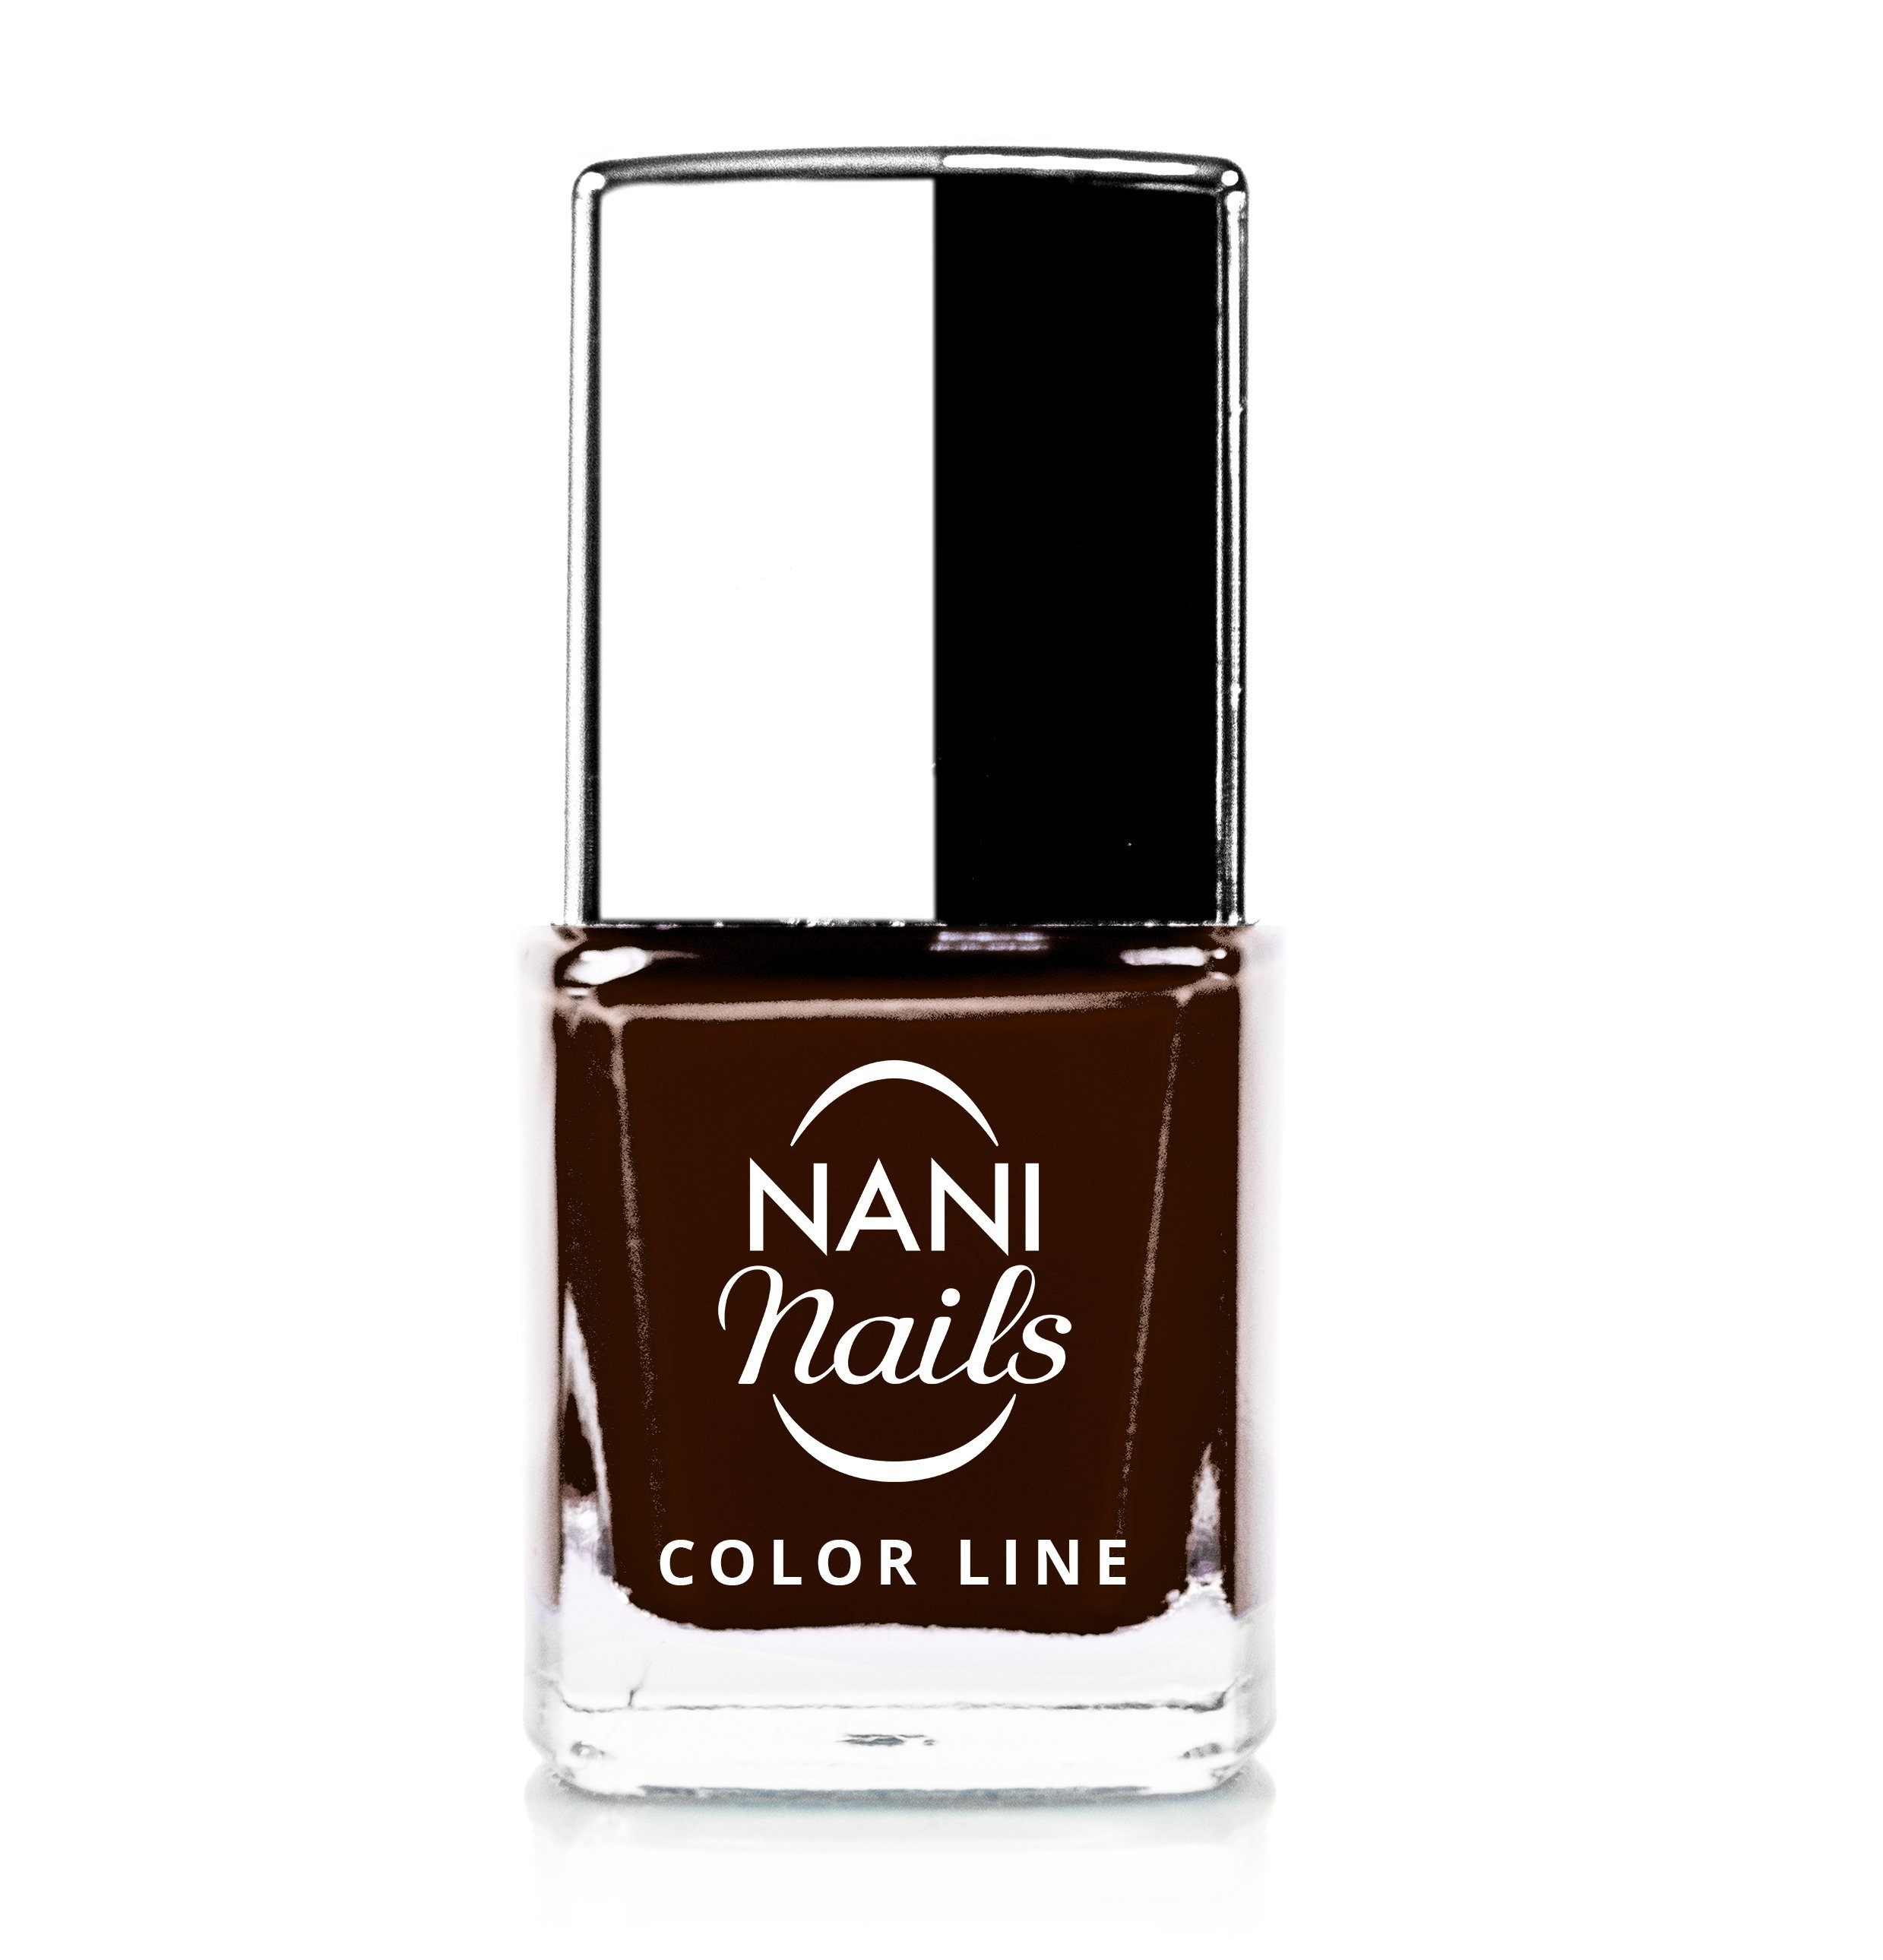 NANI lak Color Line 9 ml - 15